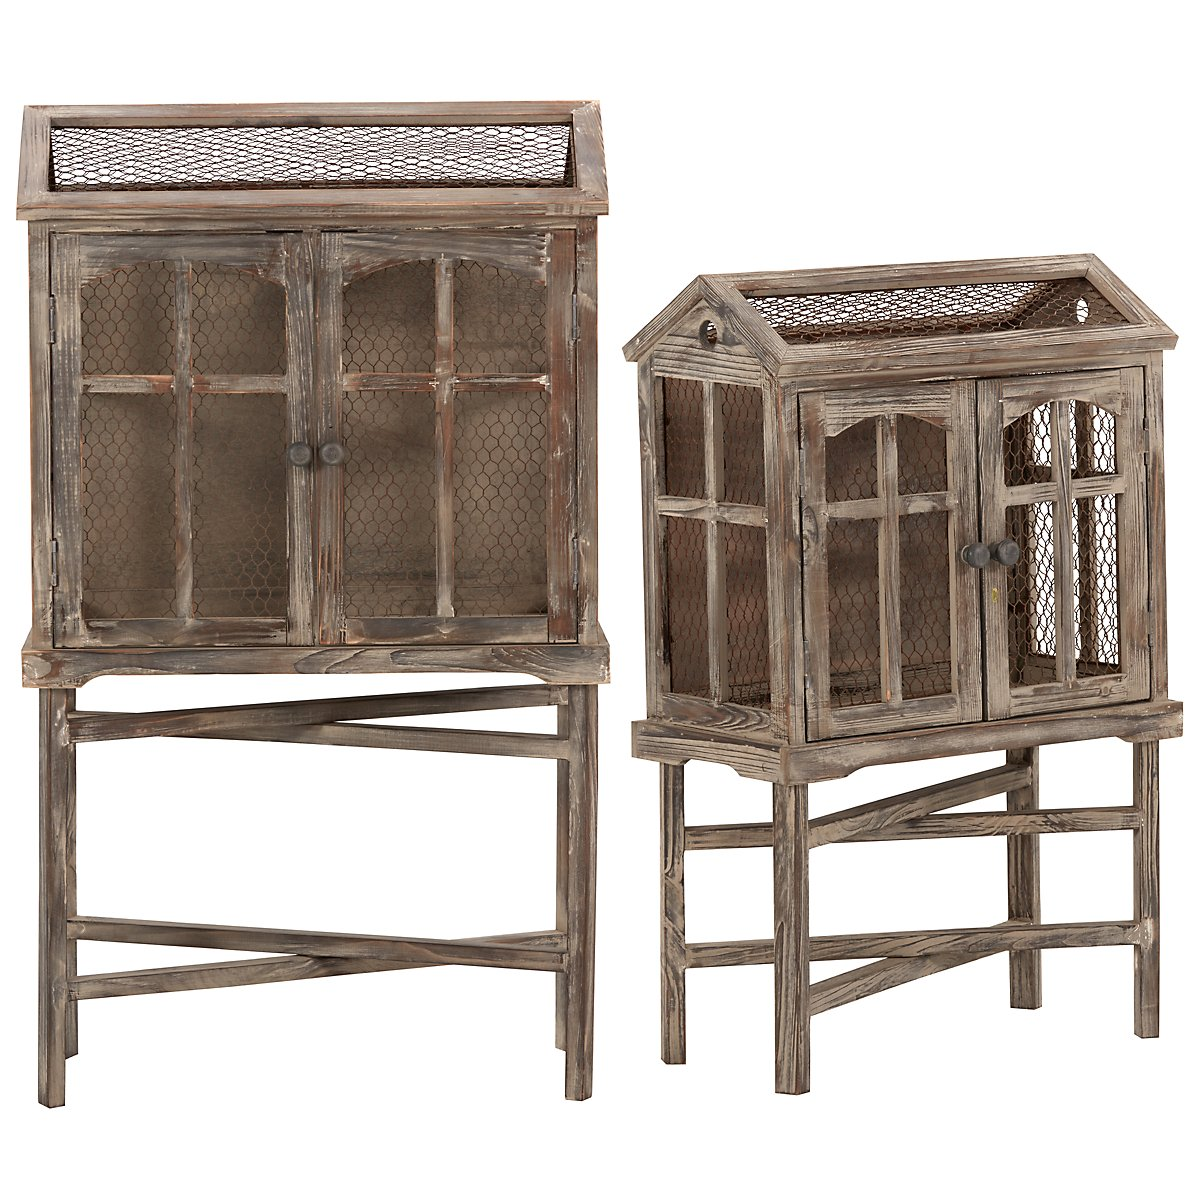 City Furniture Bird Cage Wood Set Of 2 Accent Piece